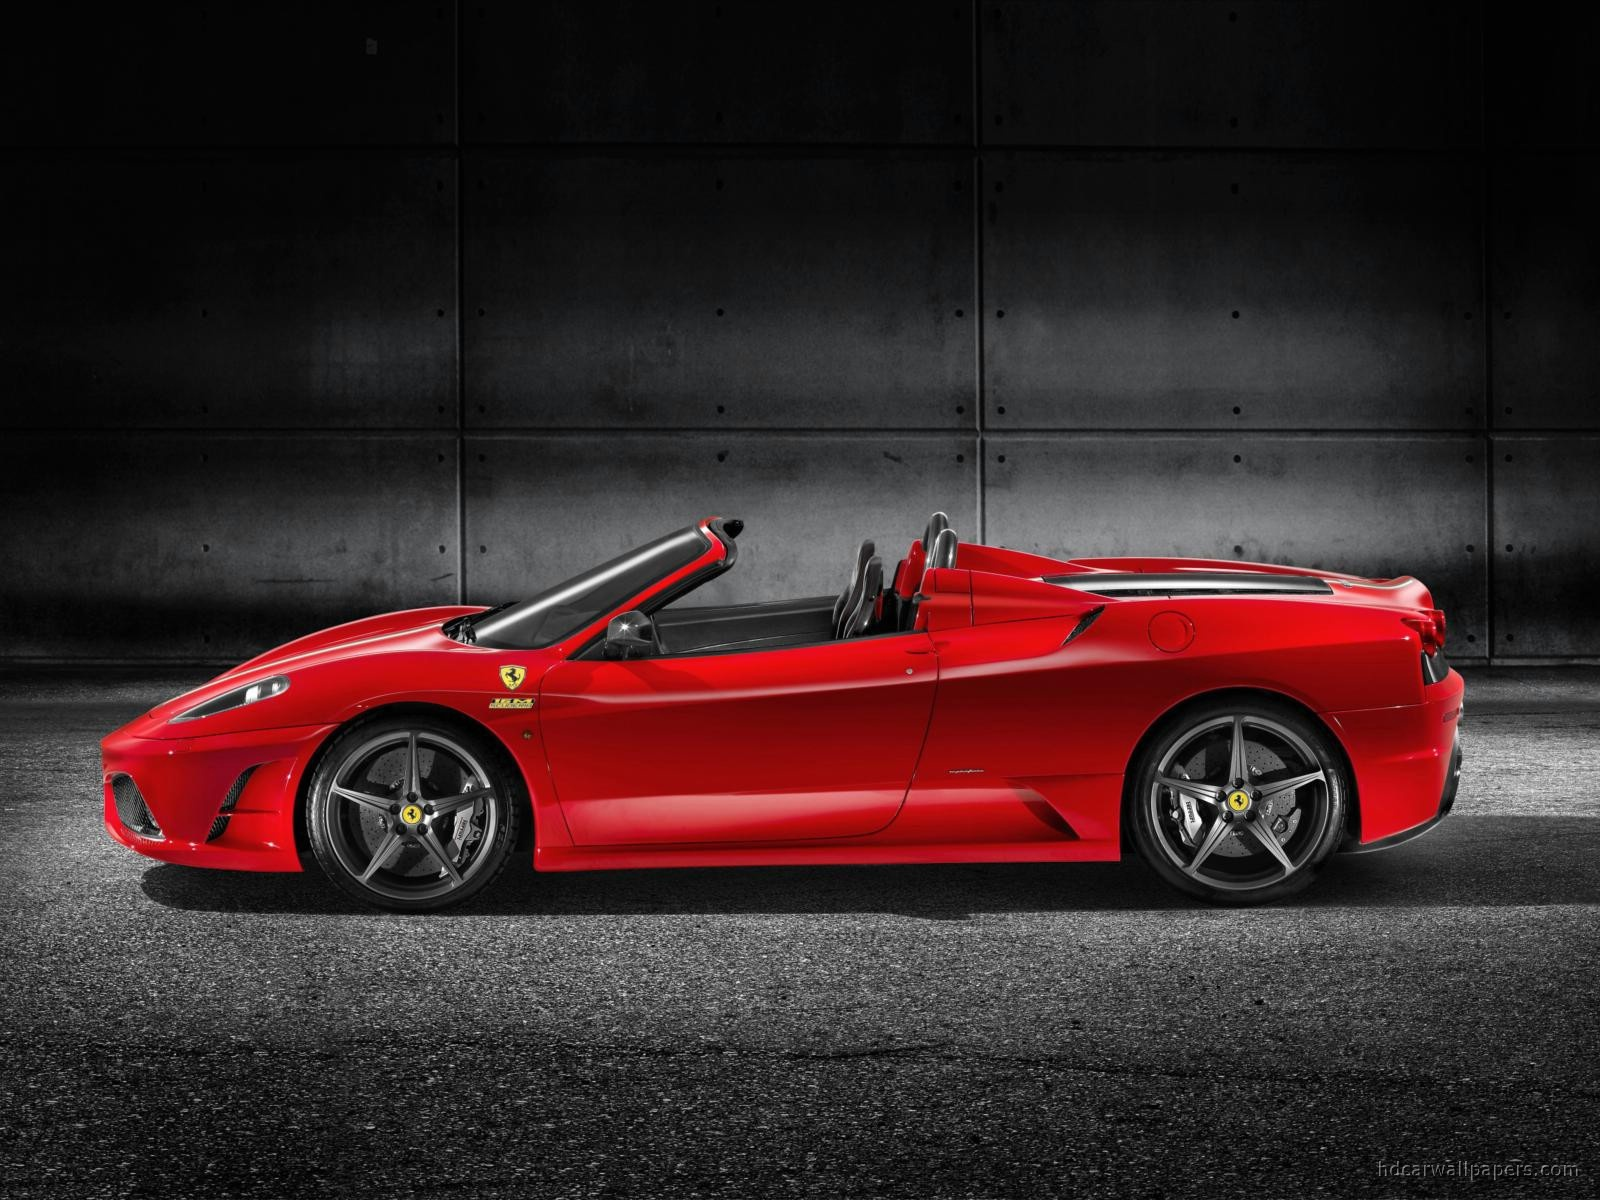 2017 Ferrari Scuderia Spider 16M photo - 2